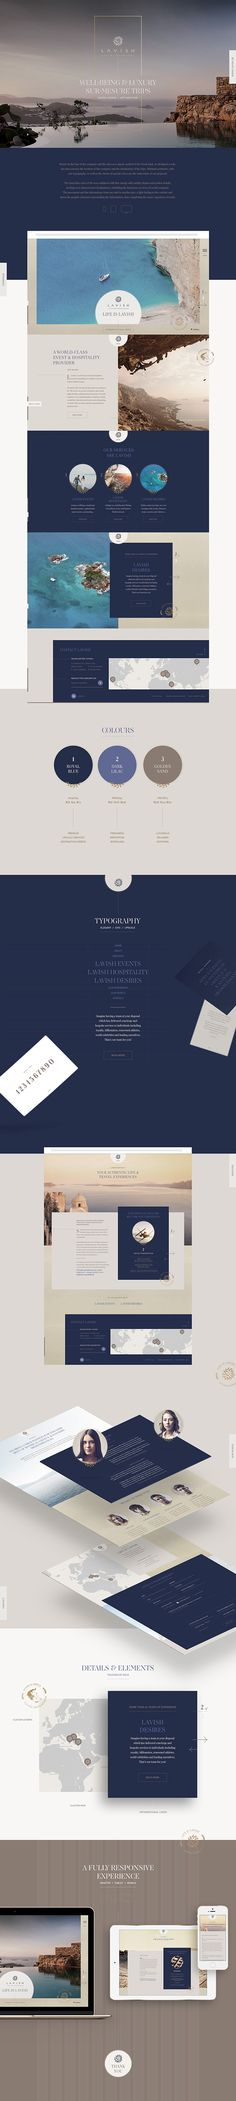 Lavish company has assigned us to design its online communication, namely a website that conveys planning sur-mesure trips of well-being and luxury.Based on the logo of the company and the olive as a classic symbol of the Greek land, we designed a websi…